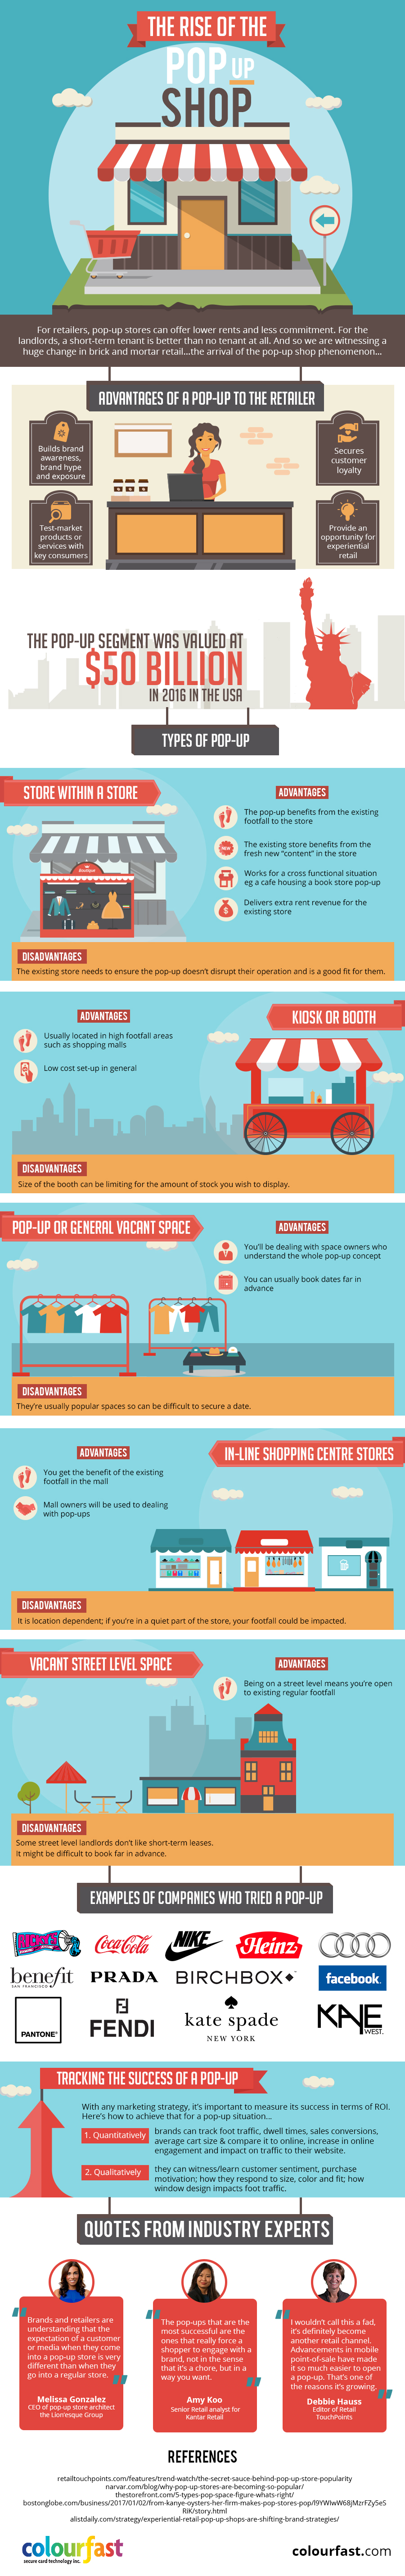 Popup Shops - The New Trend